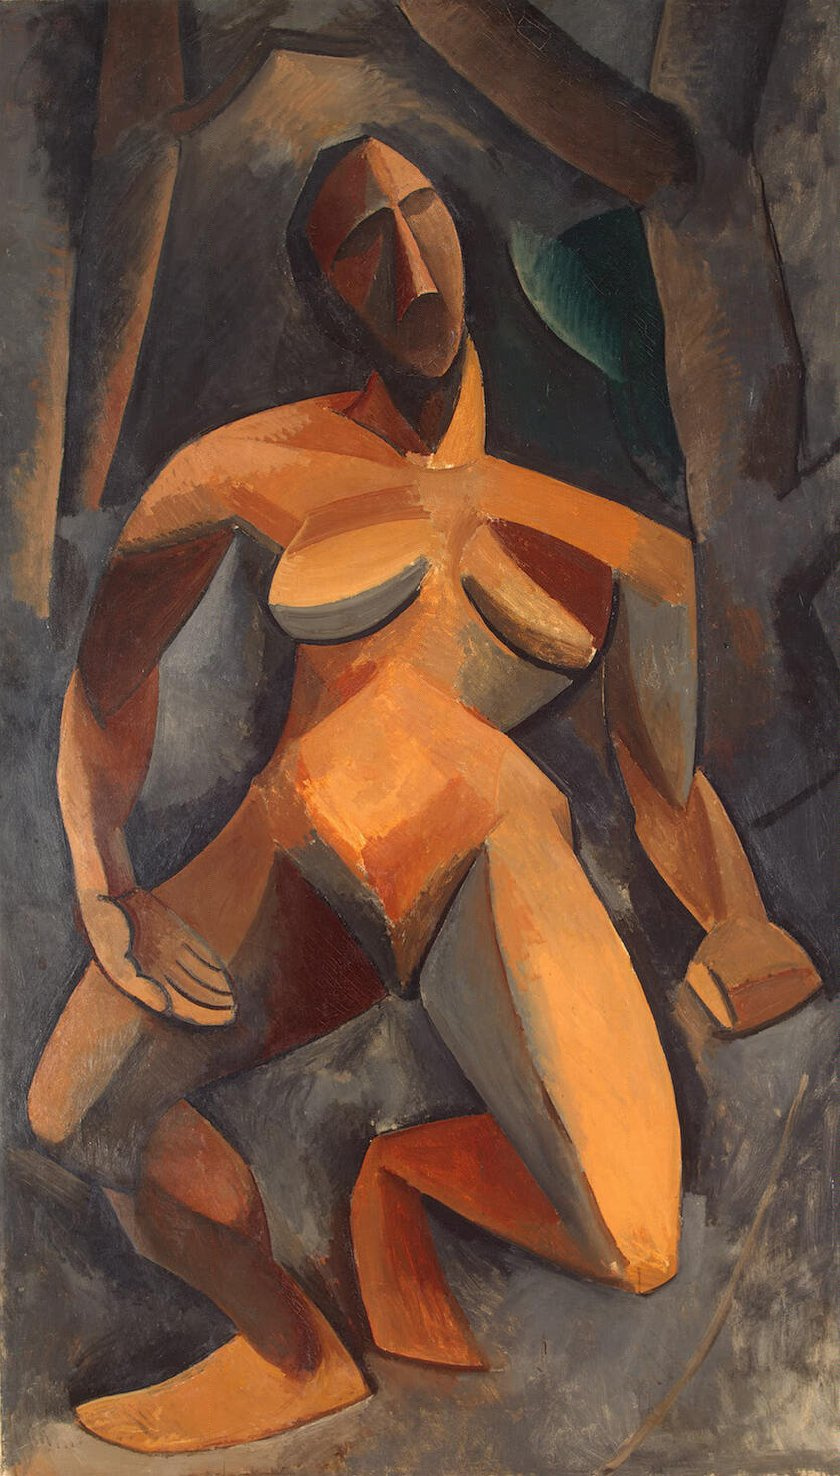 Pablo Picasso. Dryad (Nude in forest)